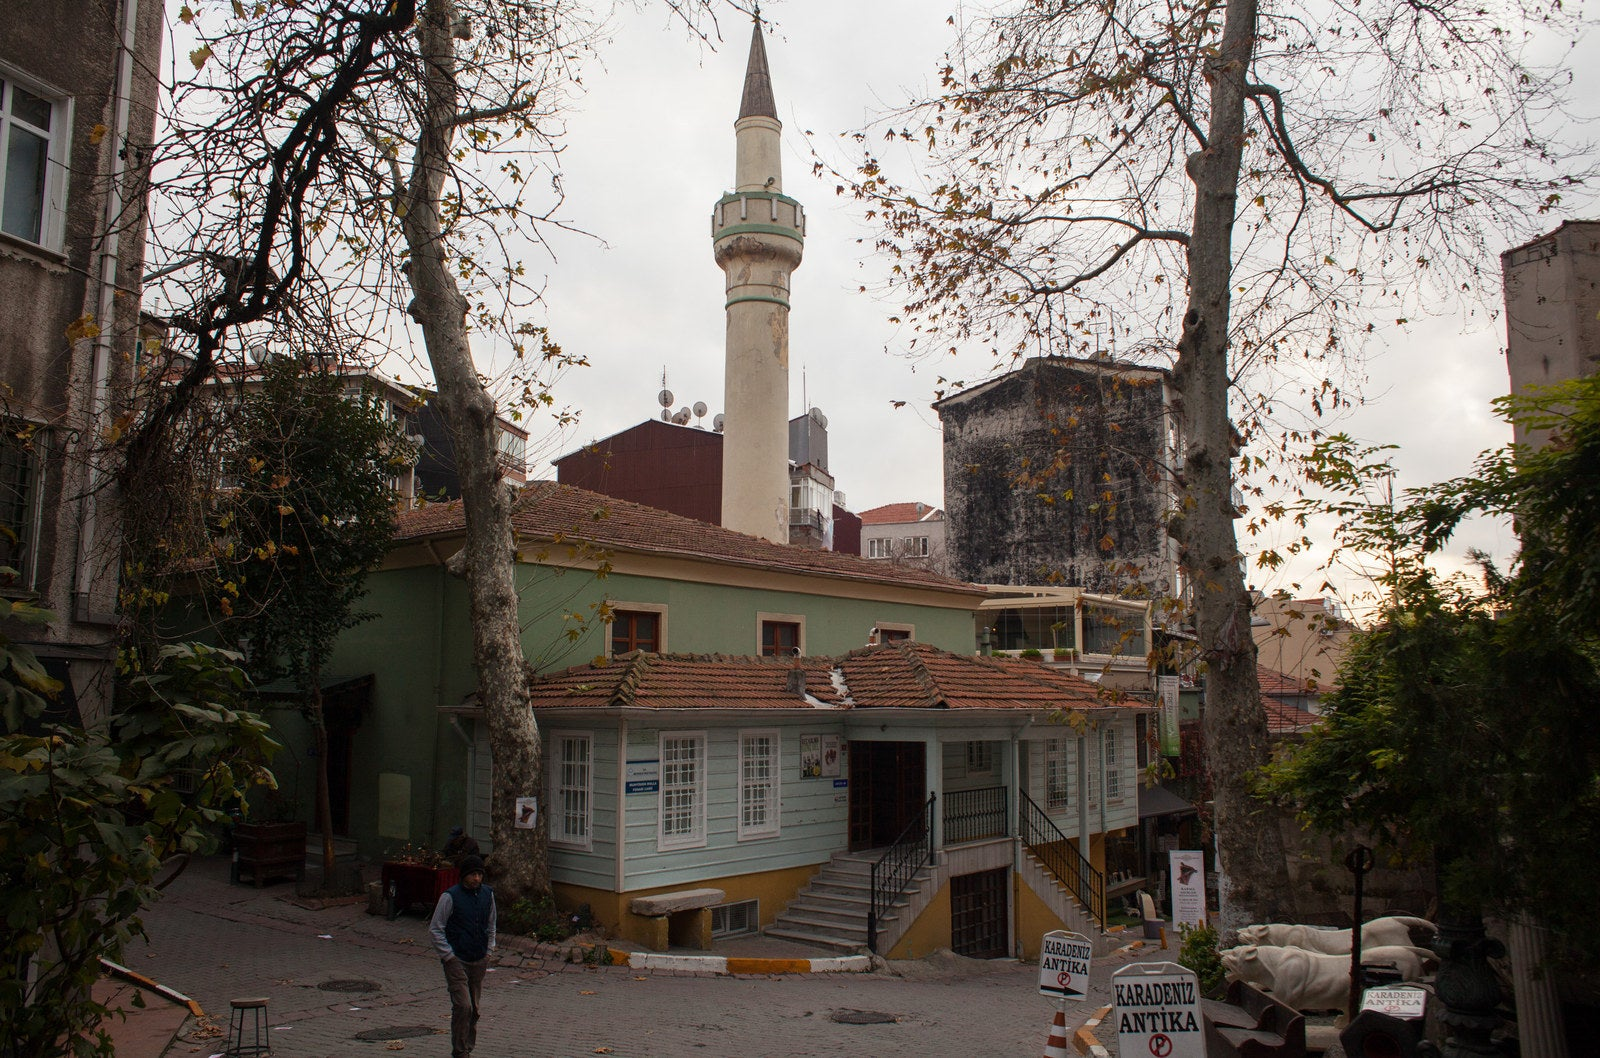 The Muhyiddin Molla Fenari mosque in Istanbul's Çukurcuma neighborhood is a good example of a well-preserved small community mosque